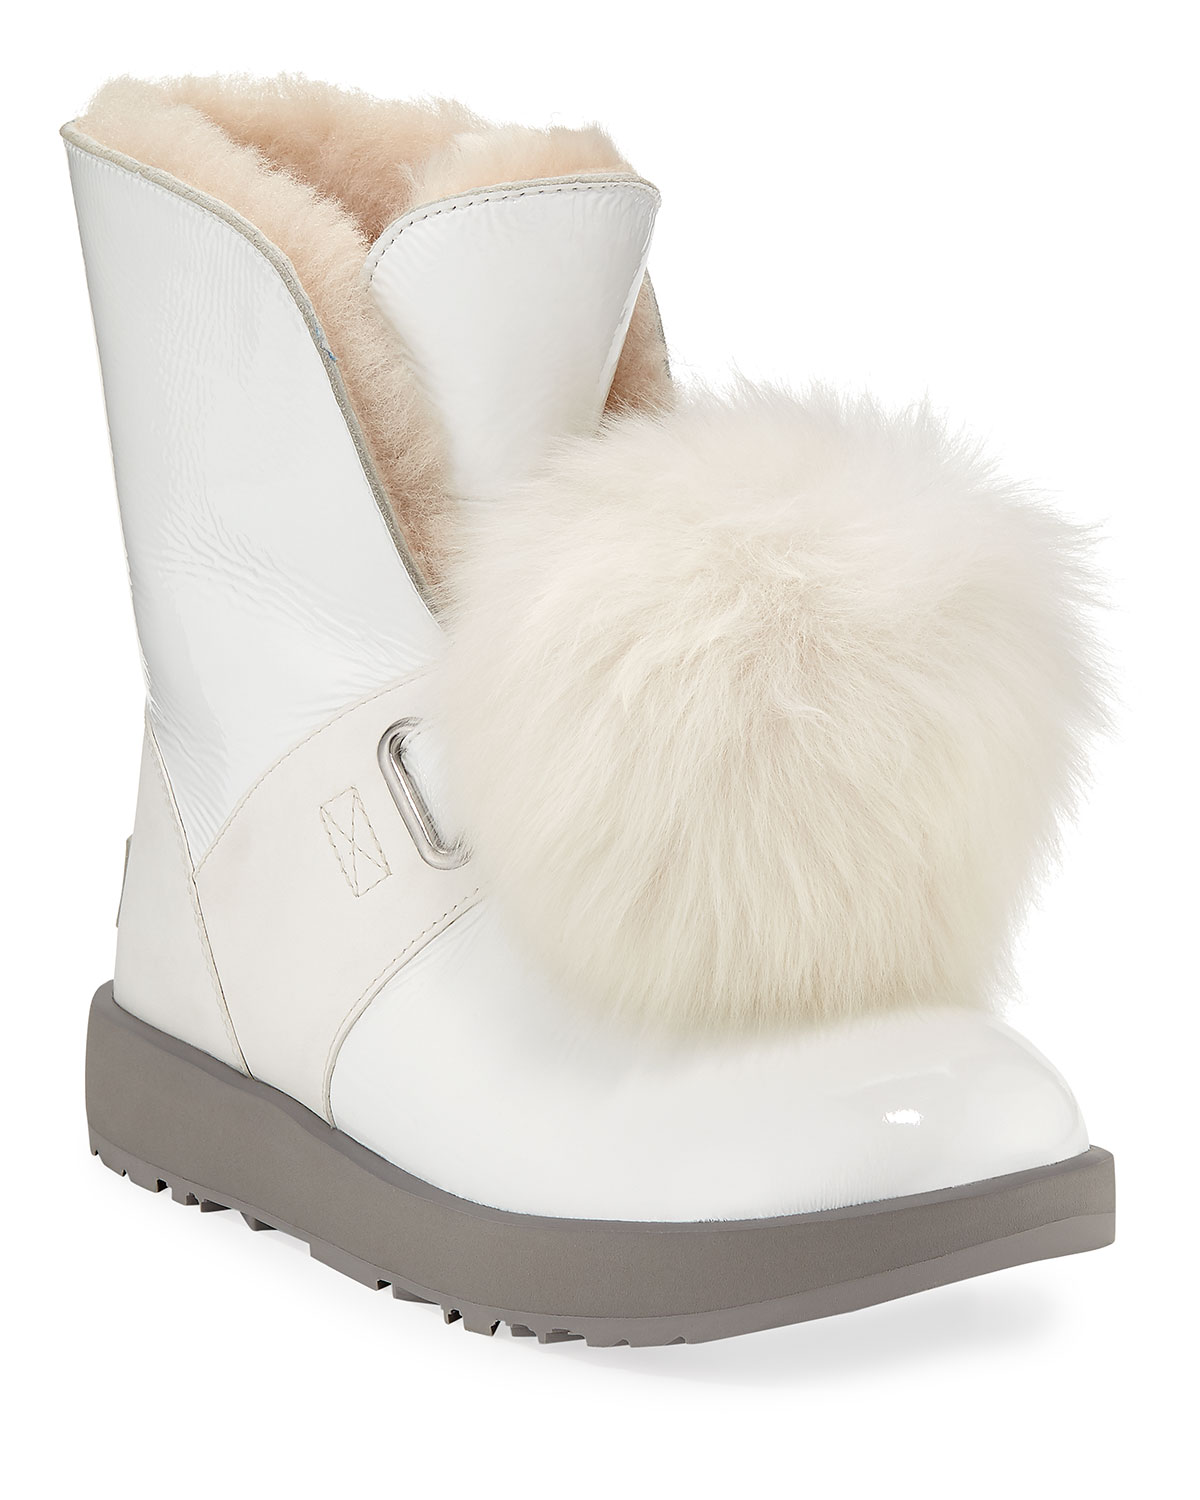 336cc17dd6d Isley Waterproof Patent Boots with Shearling Pompom